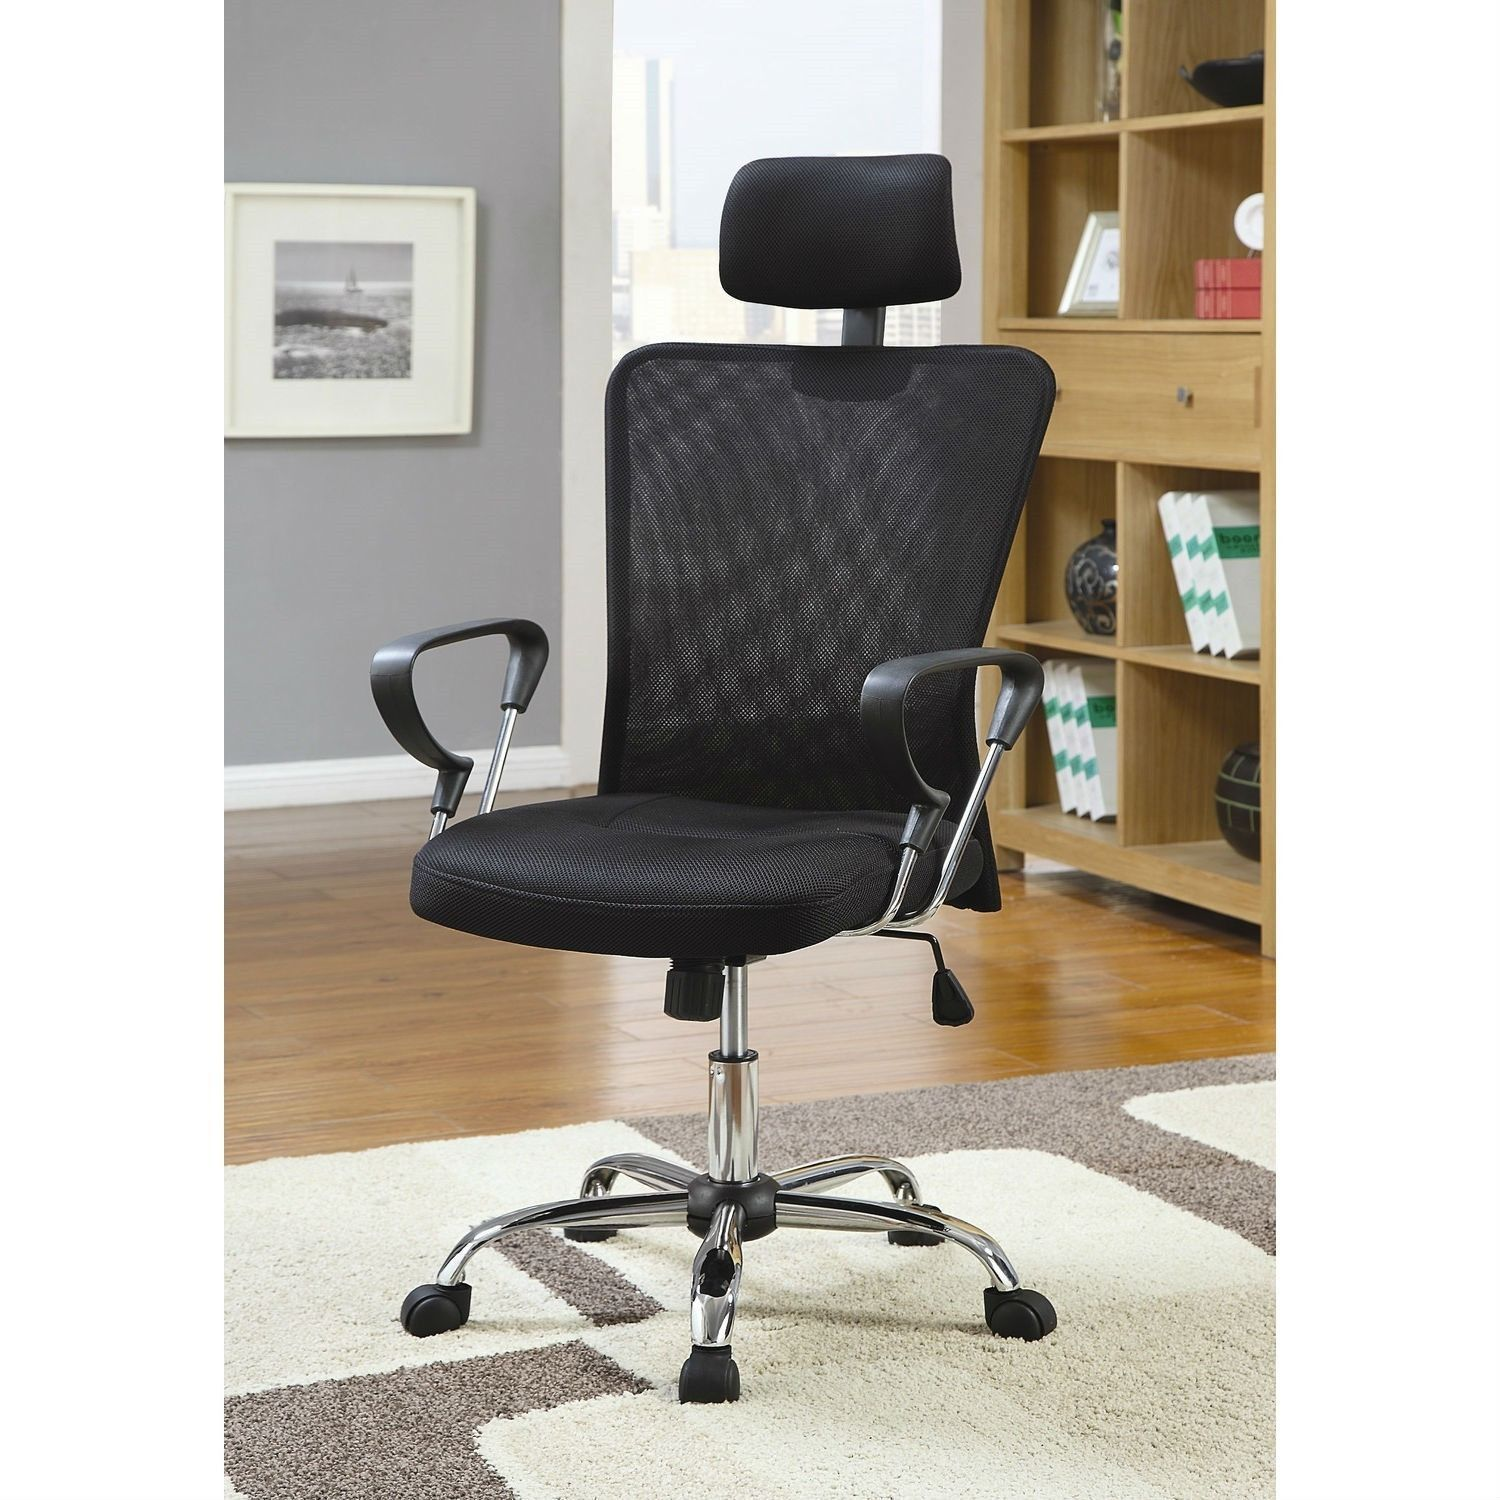 High Back Executive Mesh Office Computer Chair with